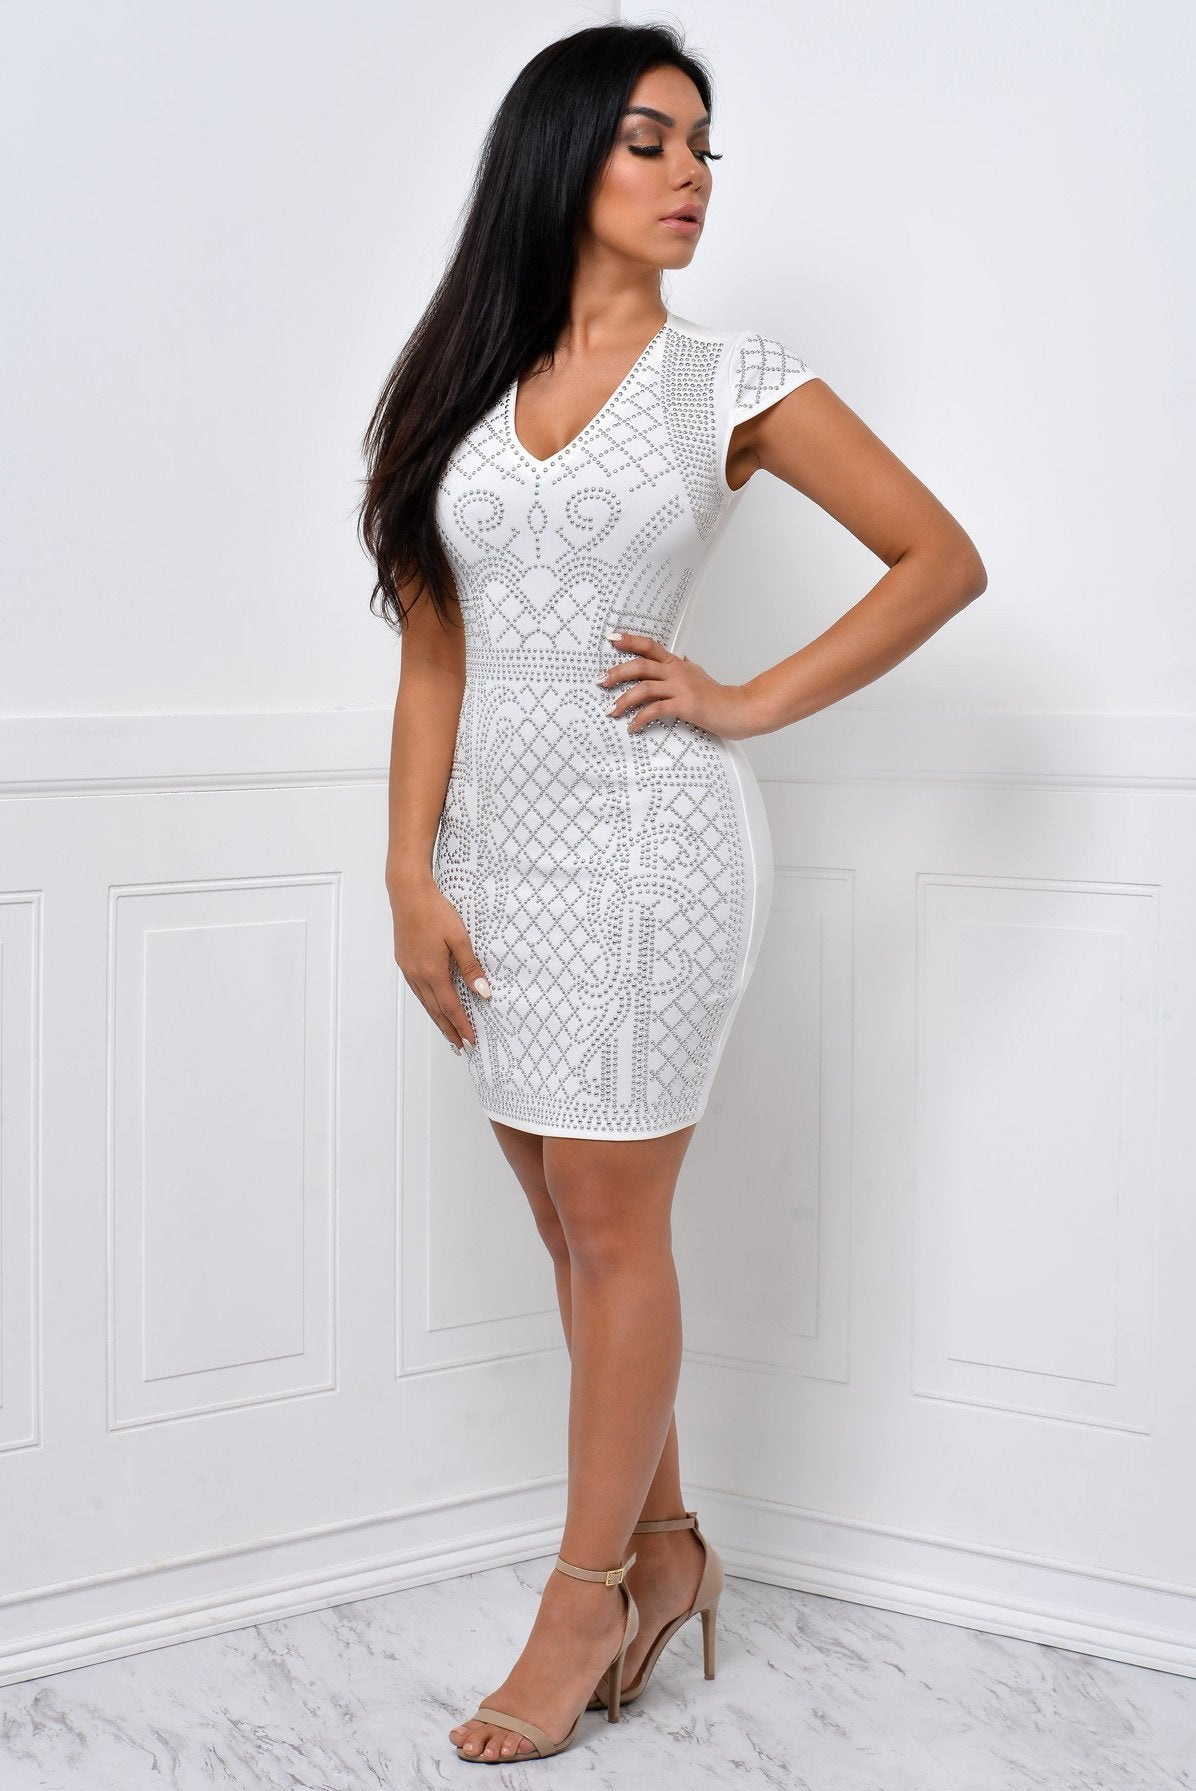 You Will Never Know White Dress - Fashion Effect Store  - 3